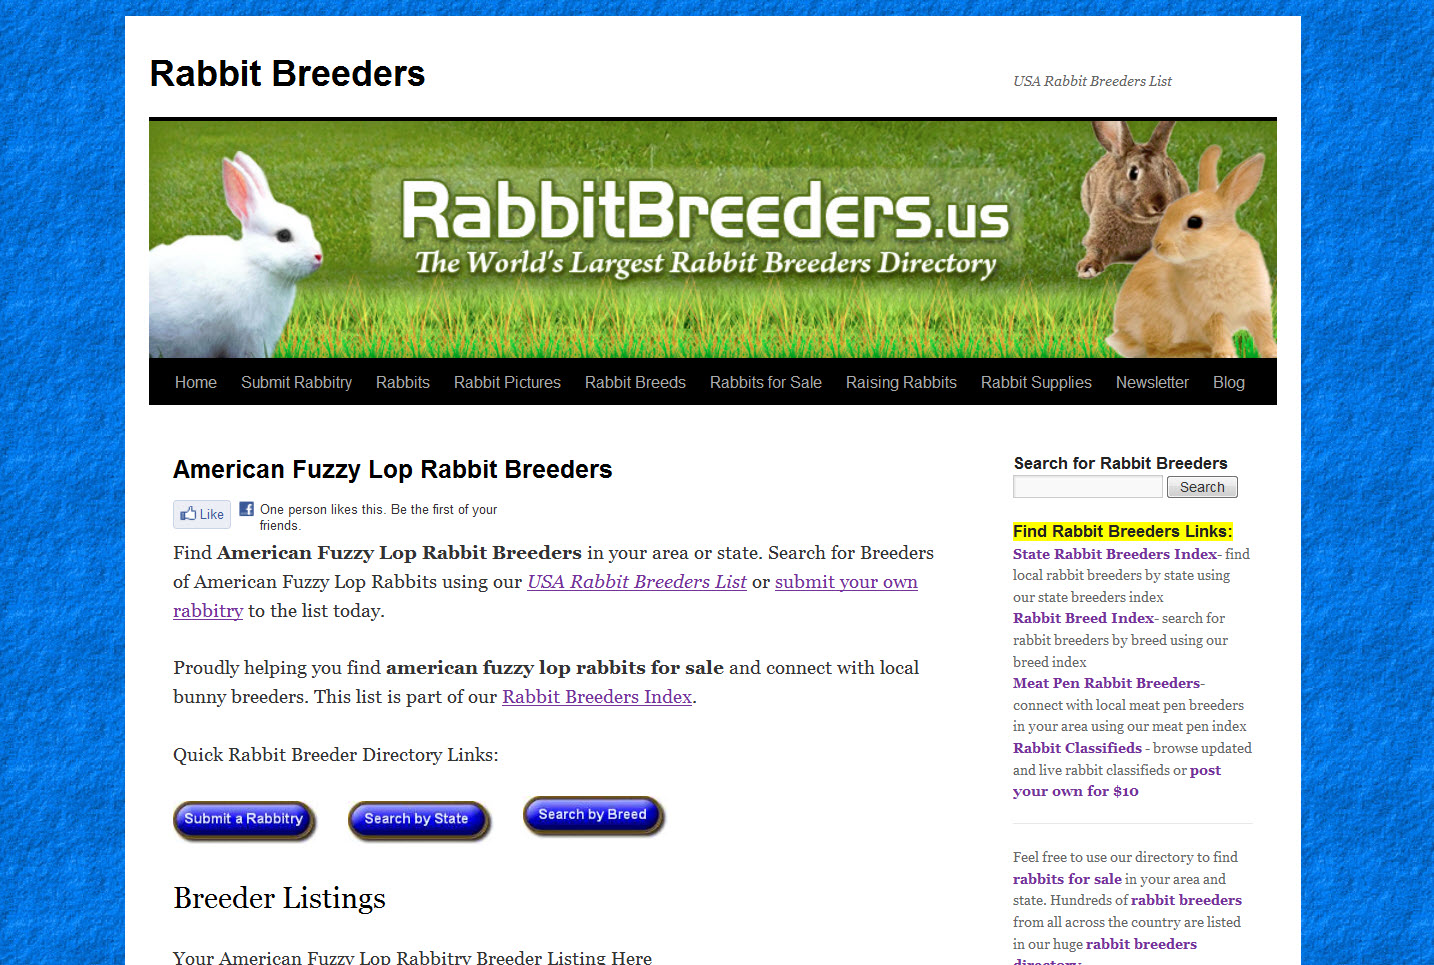 American Fuzzy Lop Rabbits for Sale